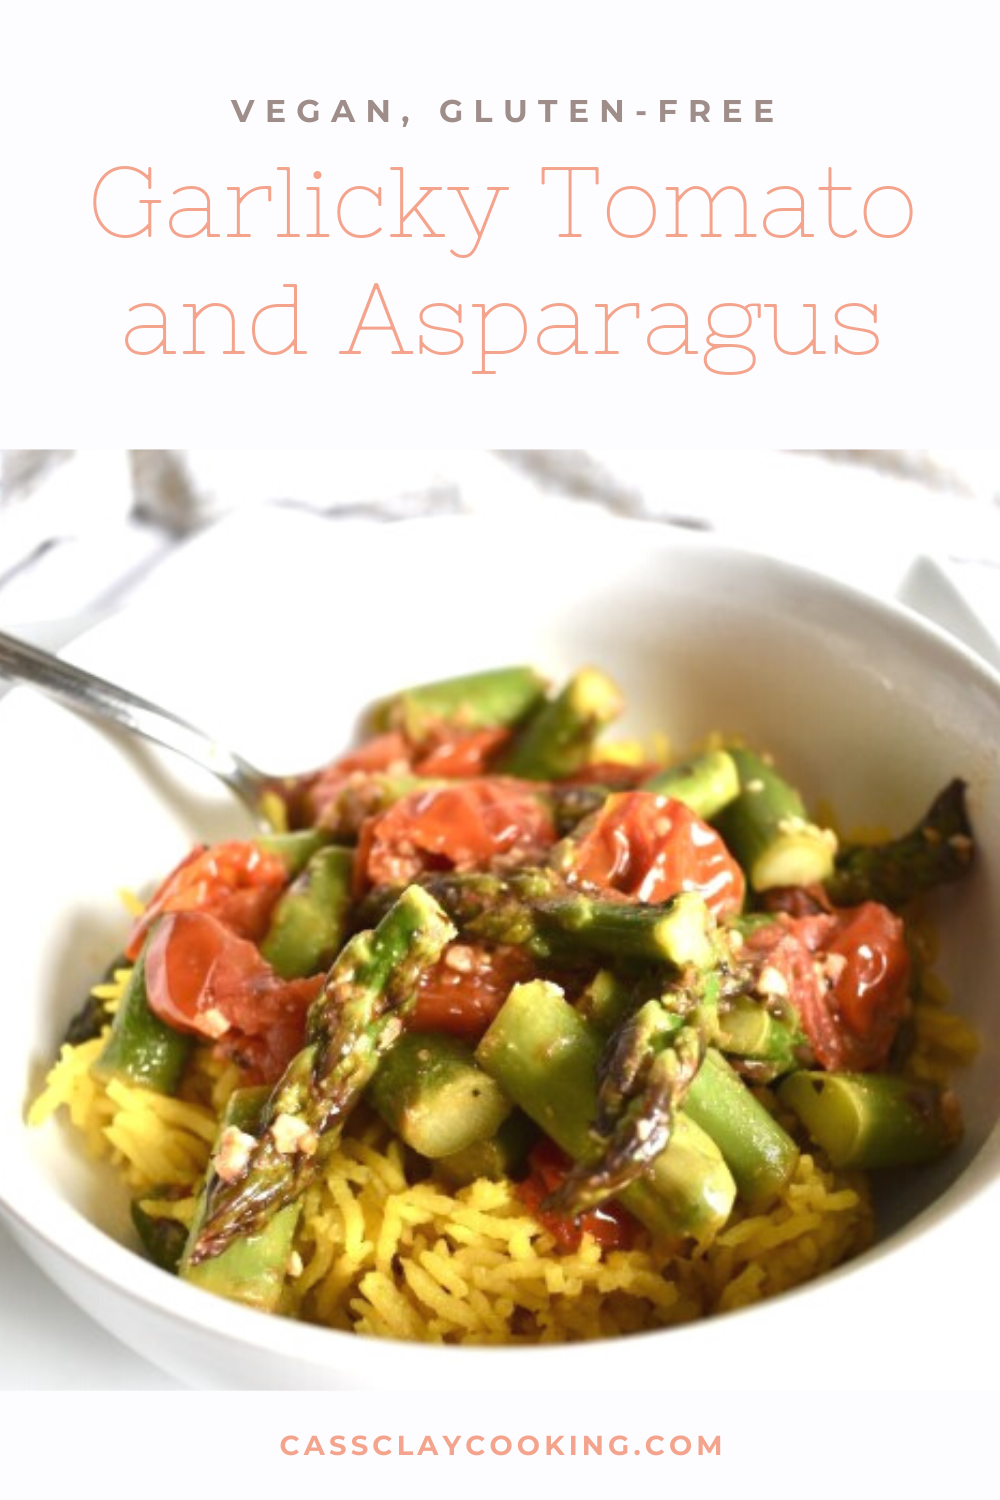 An easy veggie packed dinner that can be whipped up in under 20 minutes, this delicious skillet meal is perfect to use up any veggies that may be starting to go bad. Simple and easy to make, this goes great with leftover rice, quinoa, or even pasta. #pasta #rice #tomato #asparagus #vegan #veganmeal #veganrecipe #eatyourveggies #plantbased #glutenfree #garlic #meatlessmonday #meatlessrecipe #meatlessmeal #vegetarianeats #vegetarianrecipe